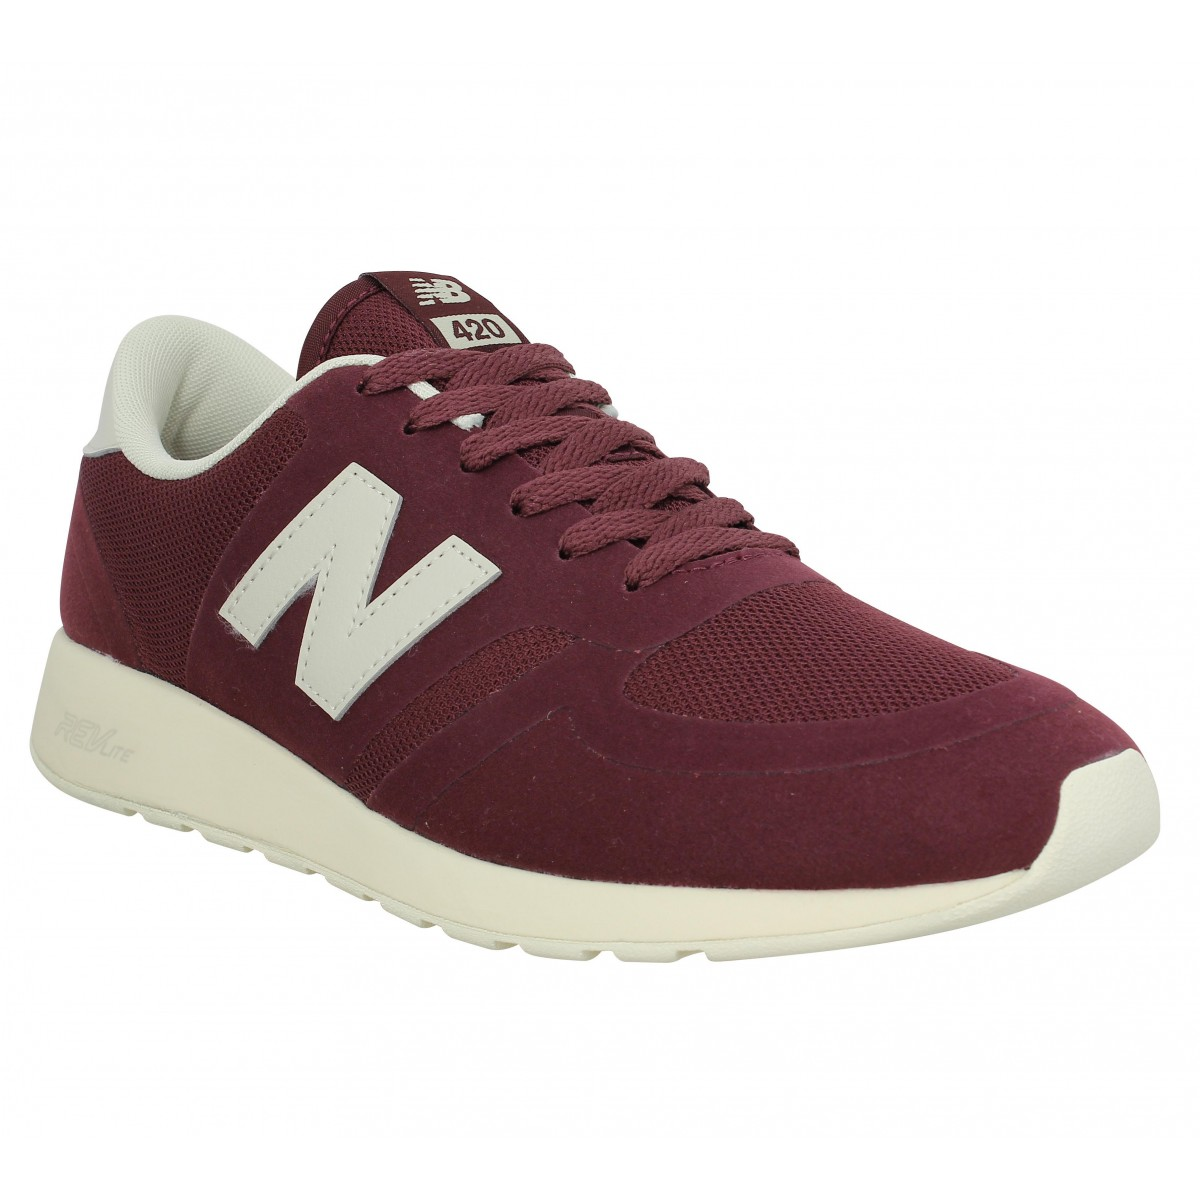 Baskets NEW BALANCE MRL 420 mesh Burgundy